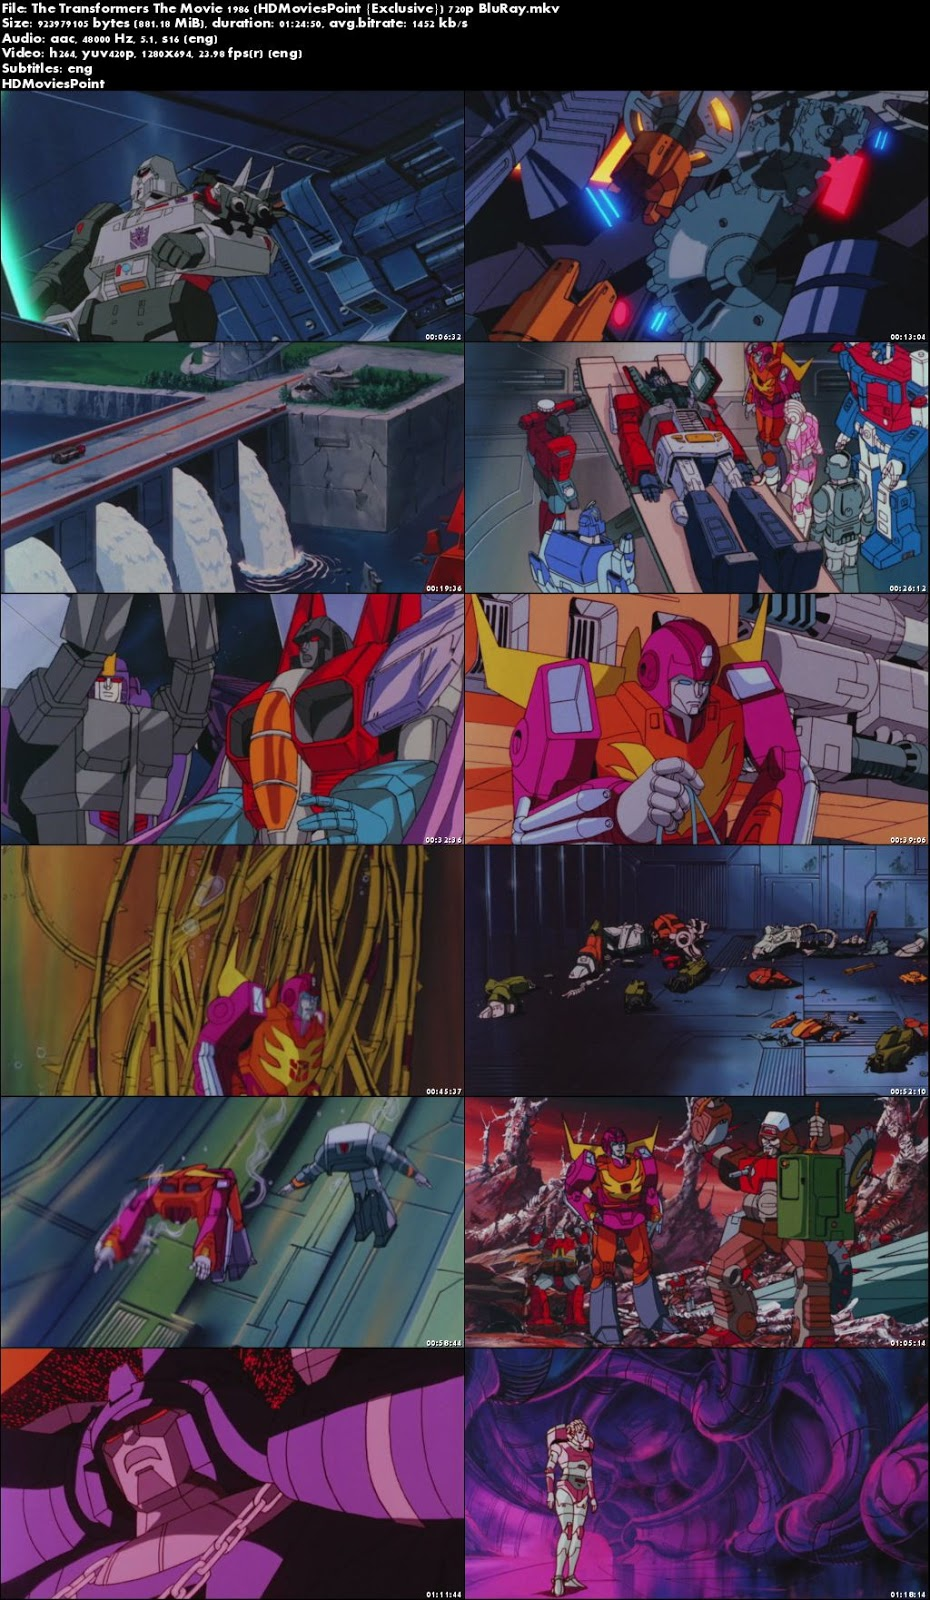 Screen Shots The Transformers: The Movie (1986) 720p BluRay Dual Audio Hindi Dubbed